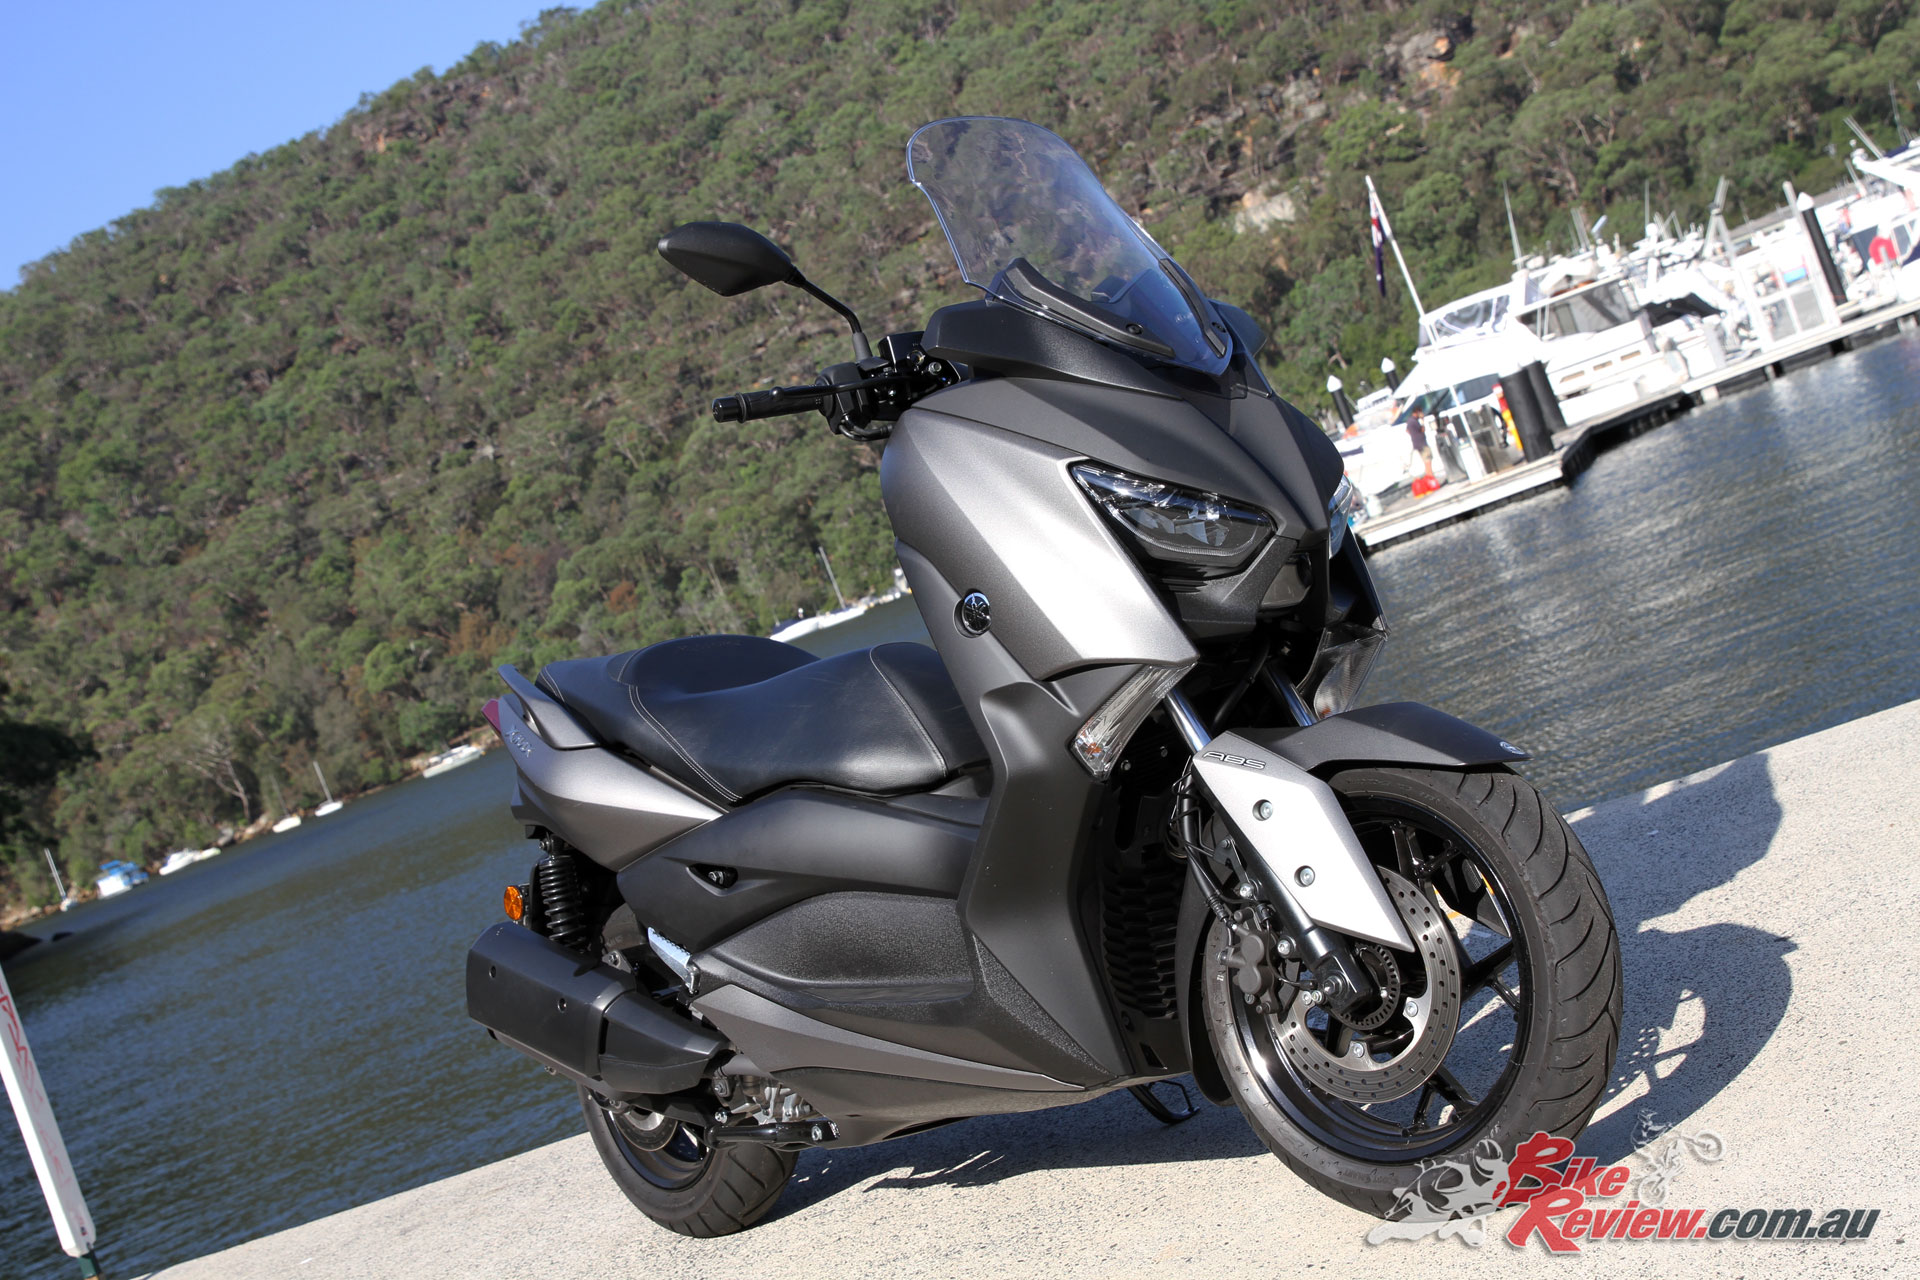 The Yamaha XMax 300 looks pretty cool in my opinion